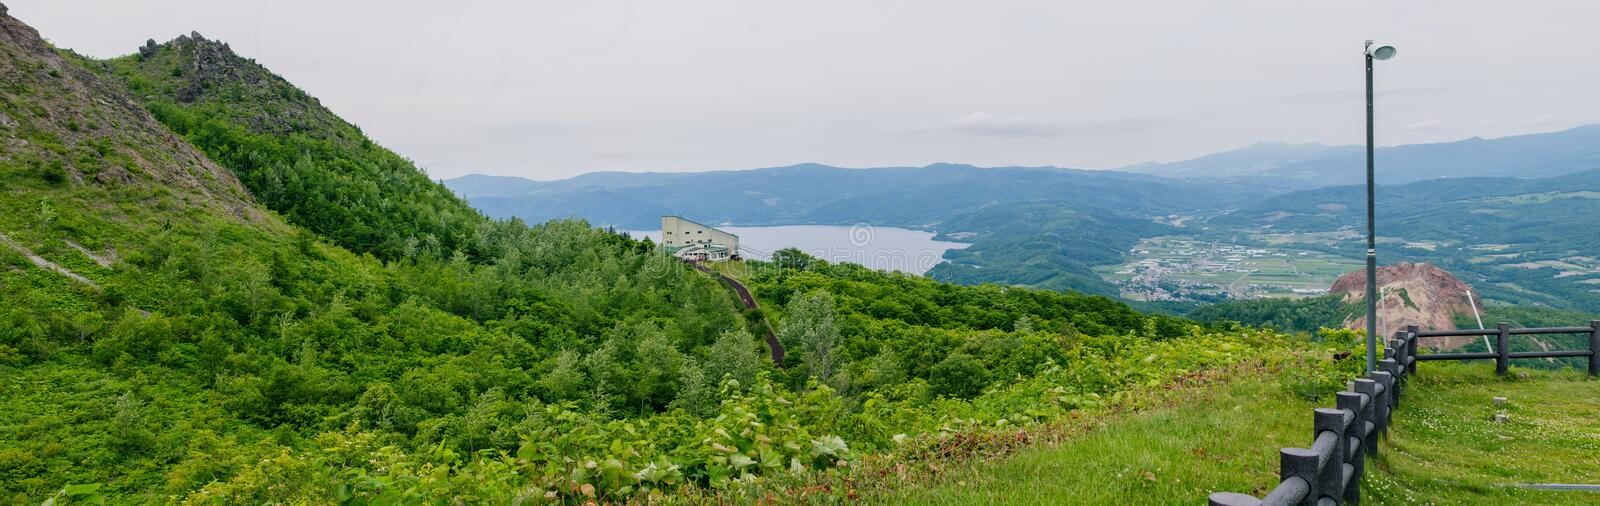 Panorama view from Viewpoint on Usu mountain at Hokkaido, Japan. This place include Showa Shinzan mountain and part of Lake Toya. Panorama view from Viewpoint stock photography